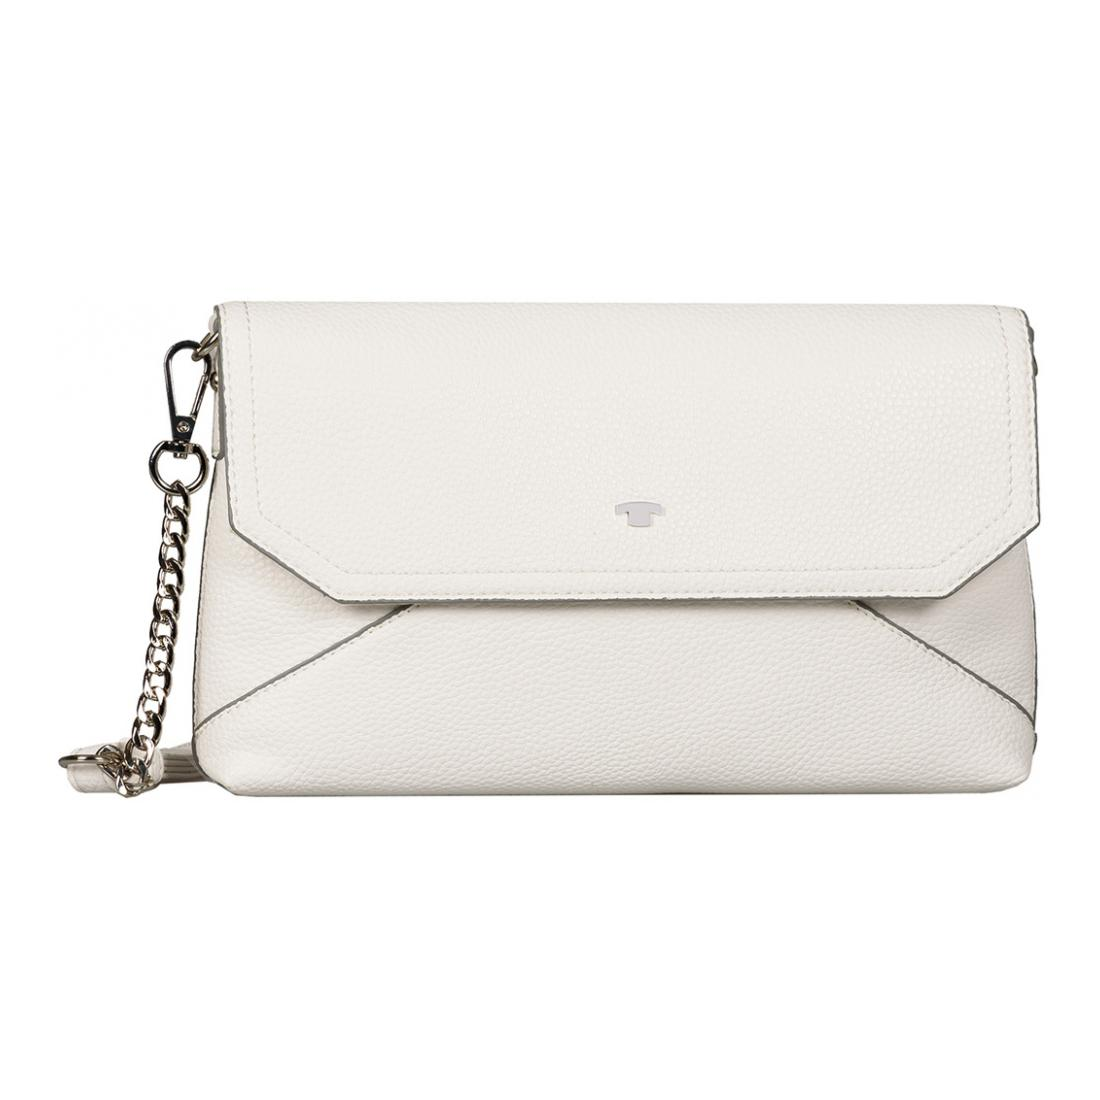 Tom Tailor Tasche VITTORIA Clutch white